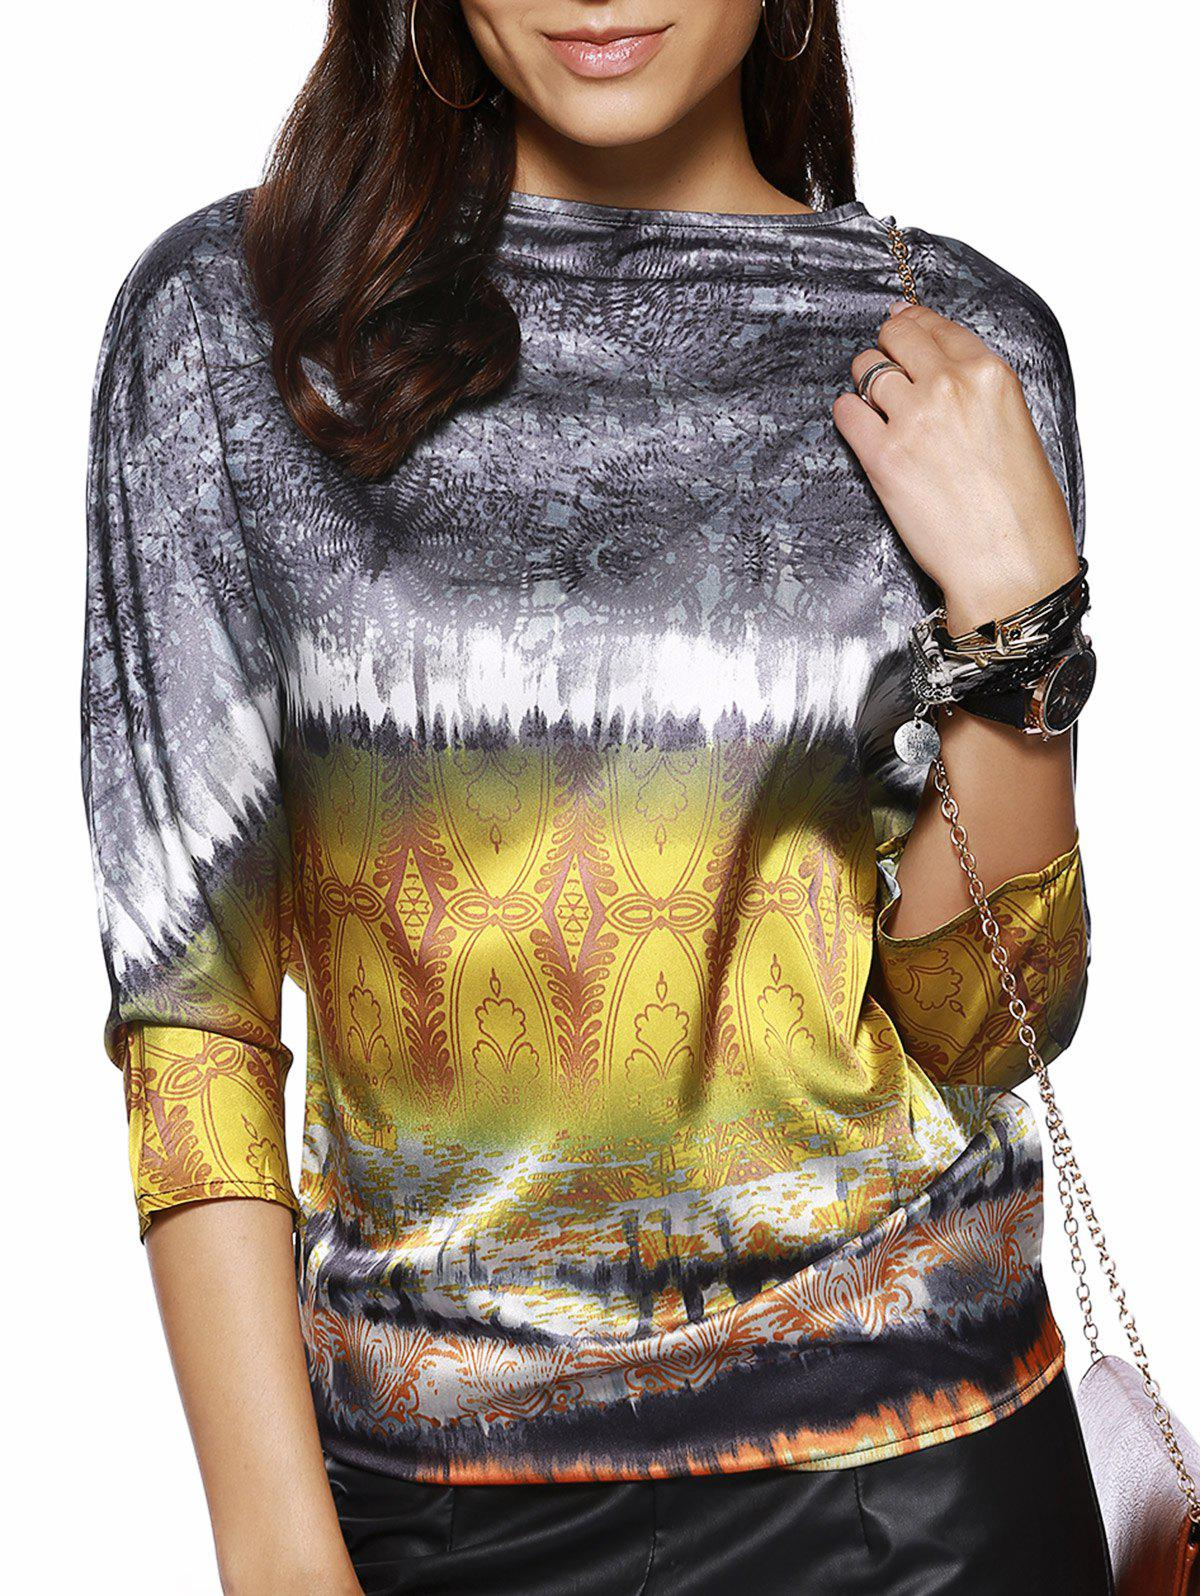 Retro Style Women's Boat Neck 3/4 Sleeve Printed Blouse - YELLOW XL